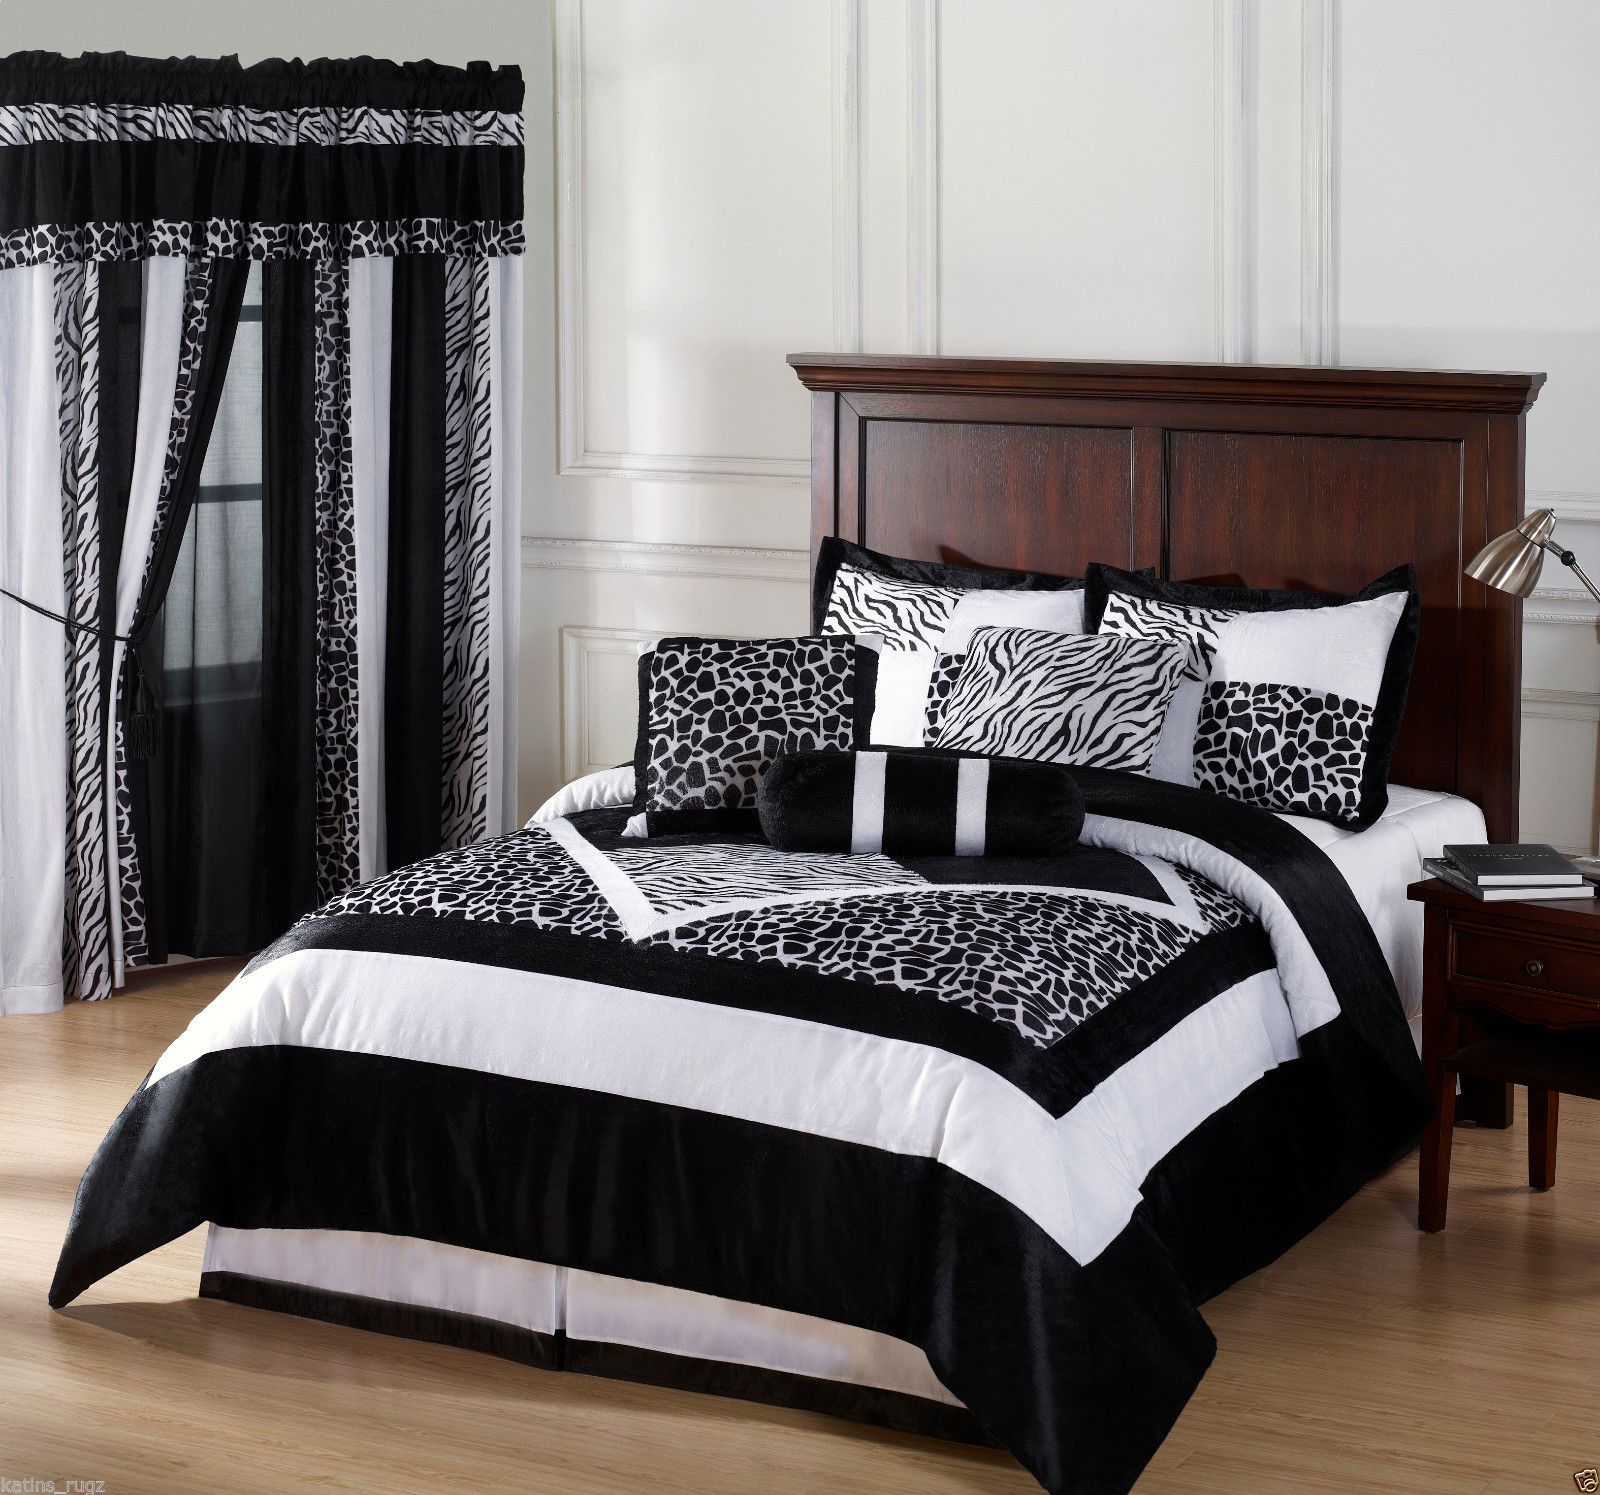 Black White Safari Zebra Print Queen Comforter Bed in A Bag 7pc | eBay